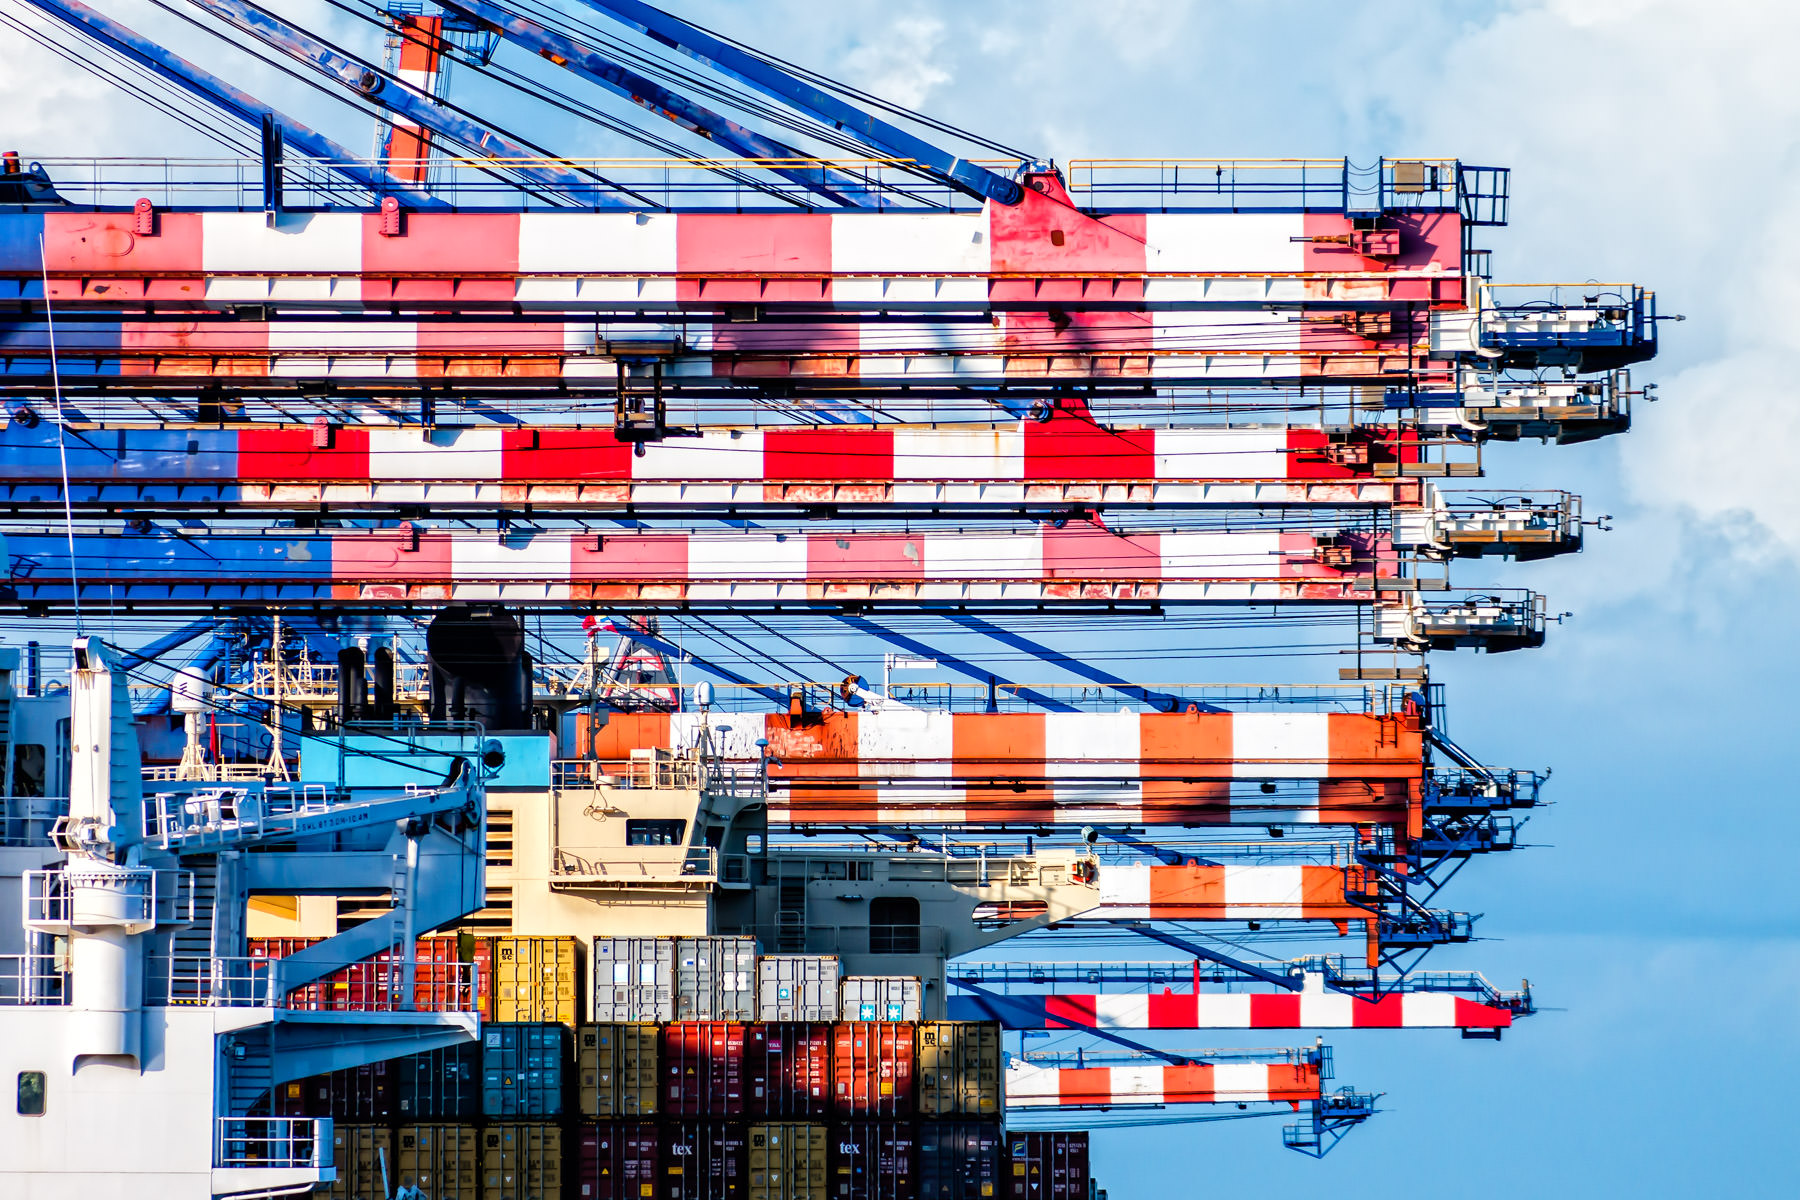 Peppermint-striped cranes load and unload cargo containers at Freeport, Bahamas.